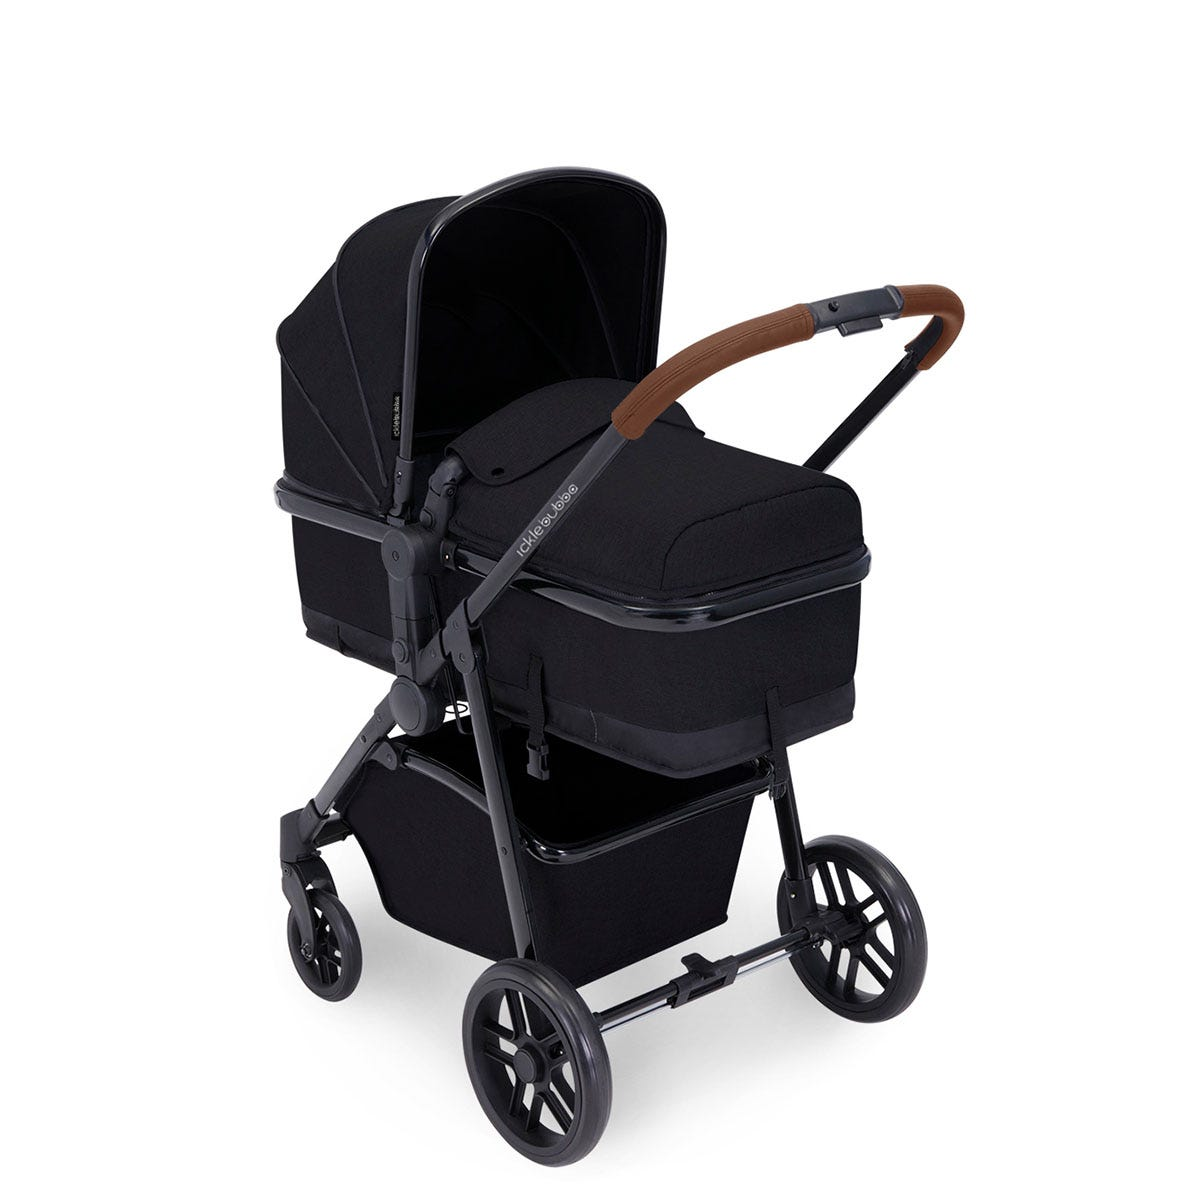 Ickle Bubba Moon 3 in 1 Travel System ISOFIX - Black on Black with Tan Handles